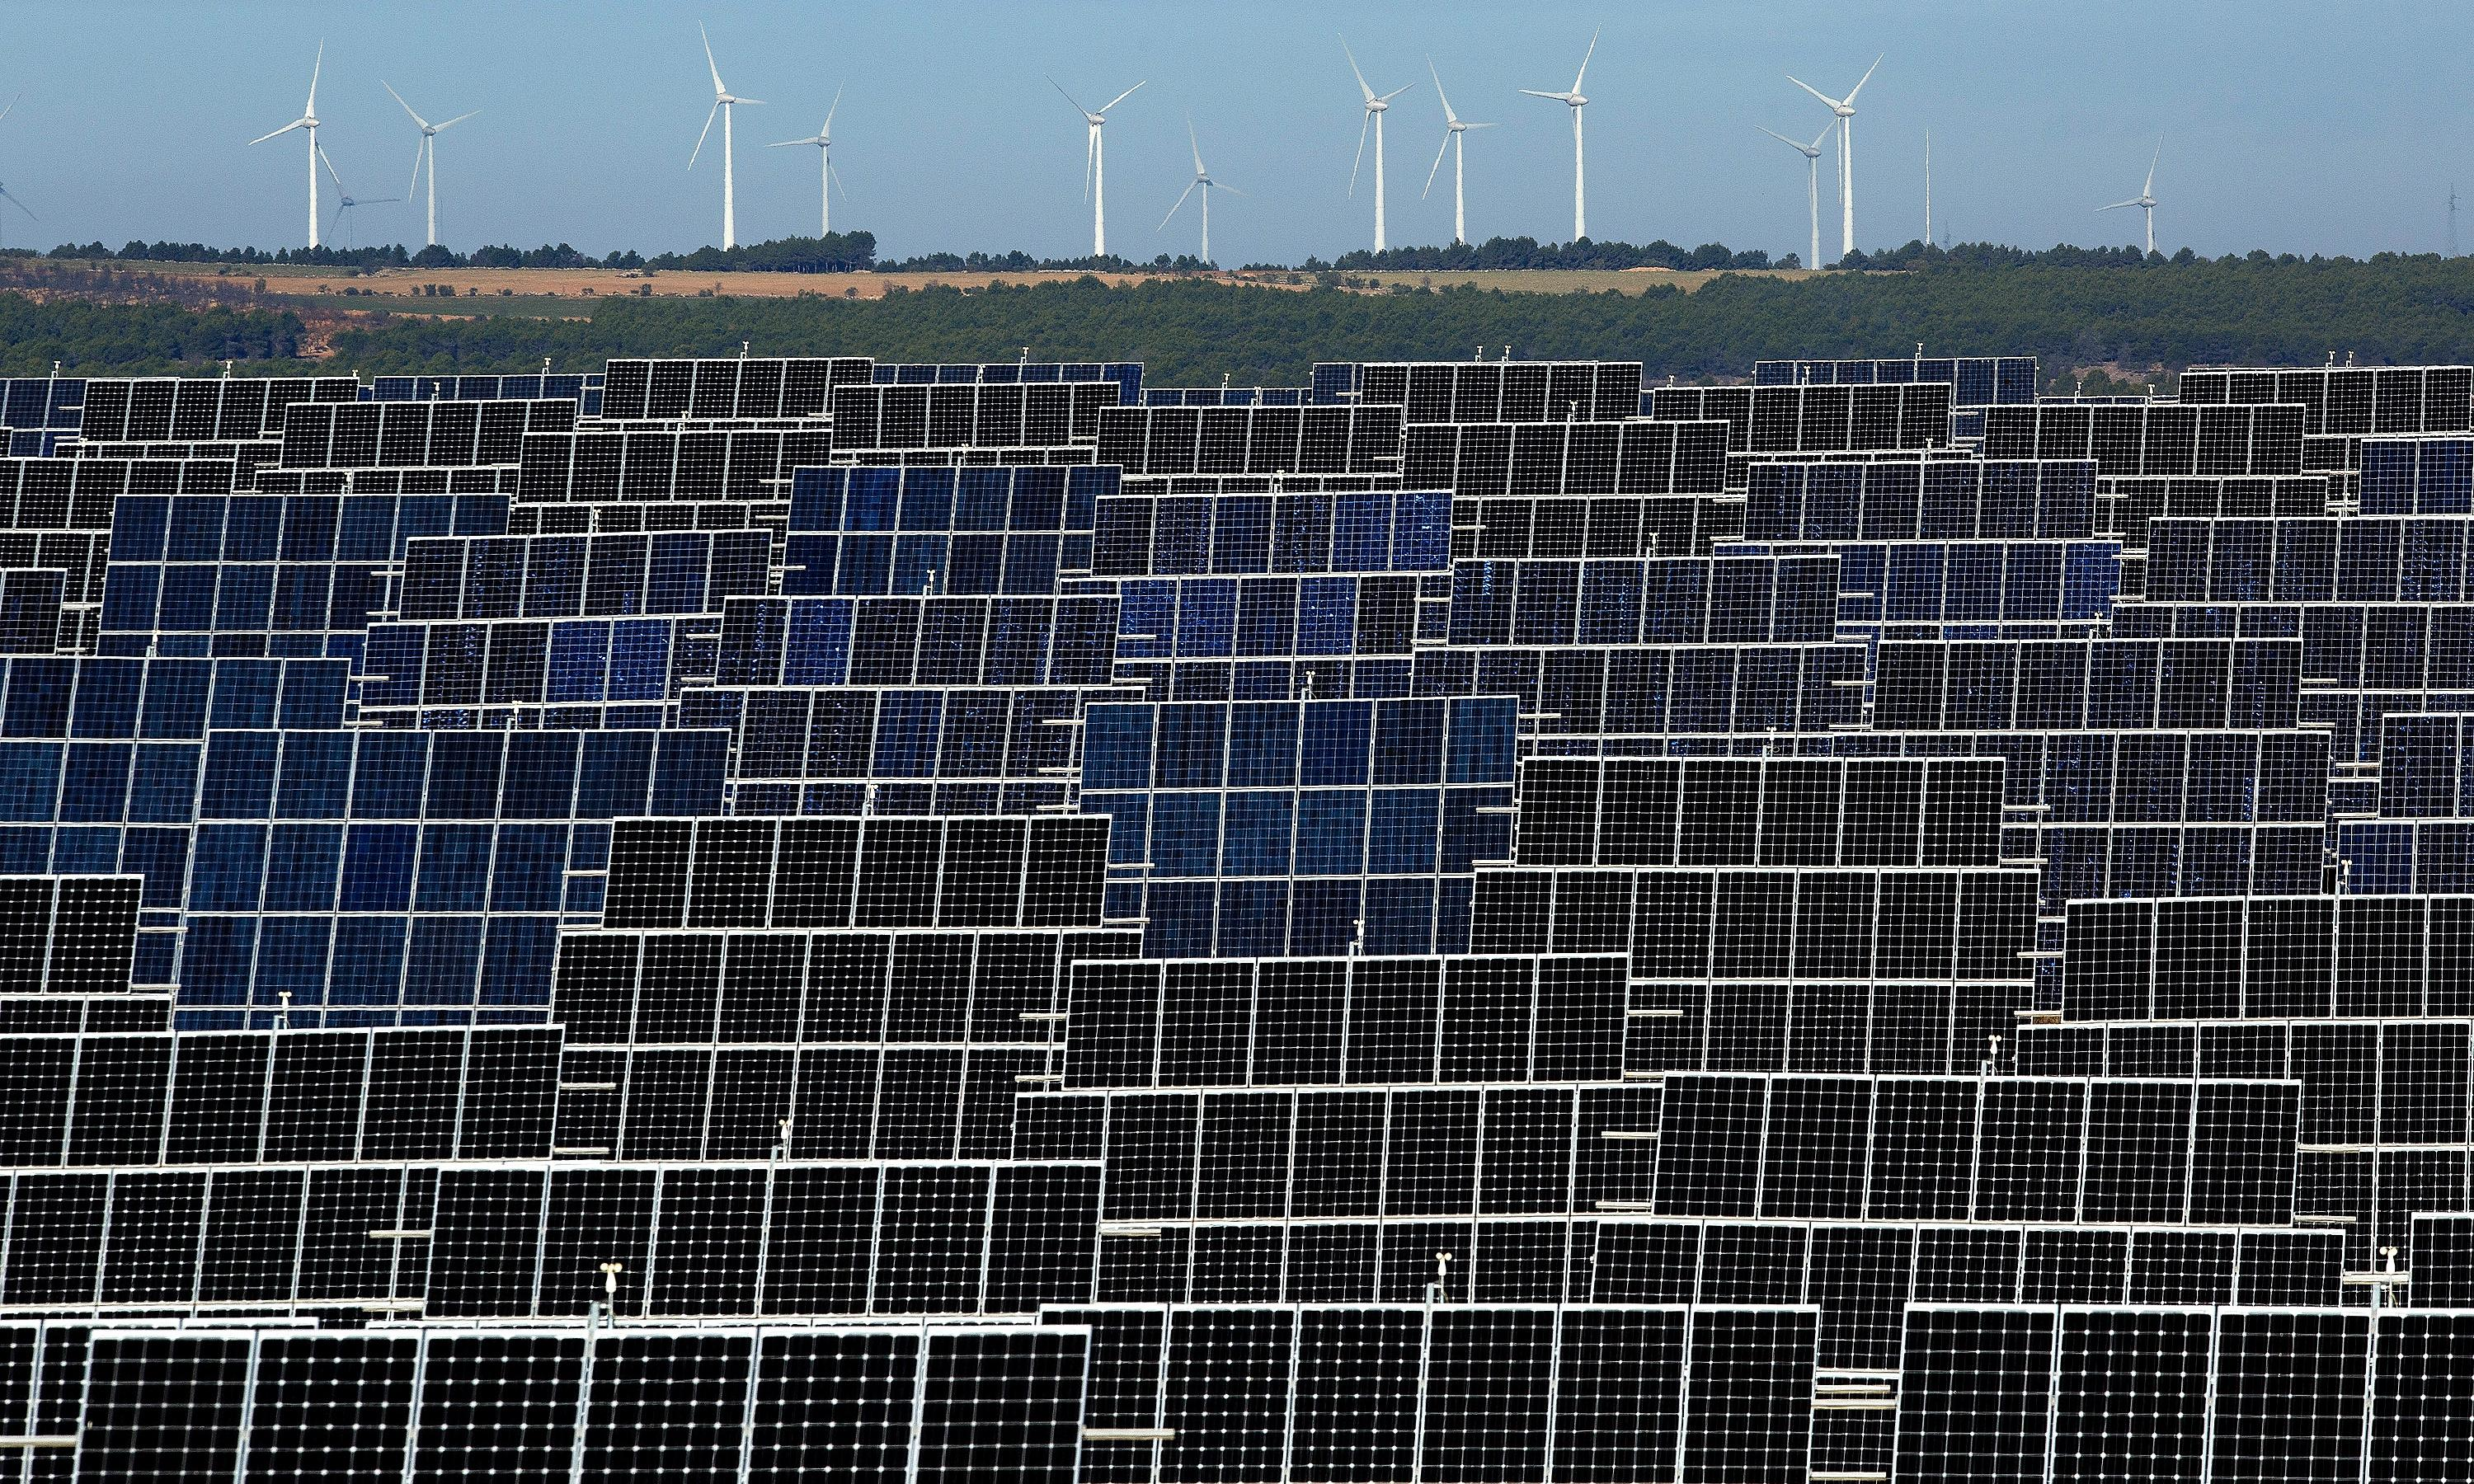 Spain plans switch to 100% renewable electricity by 2050